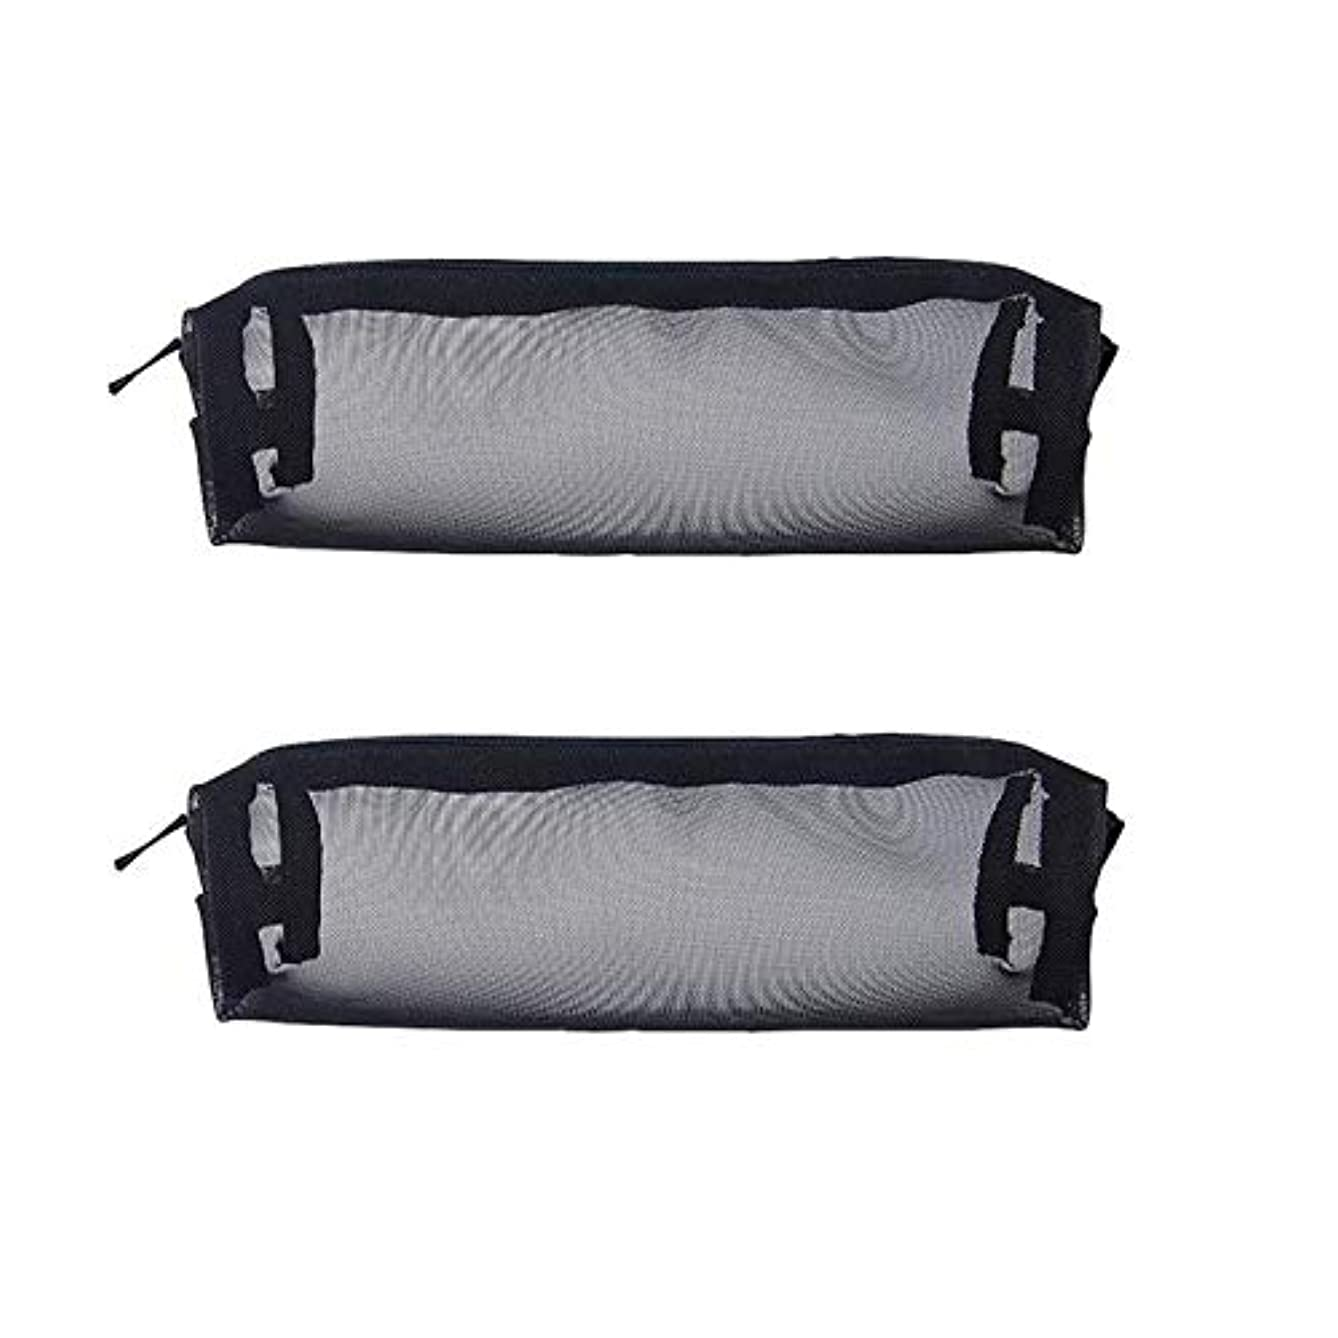 Chris.W 2Pack Visible Zippered Square Mesh Stylus Pencil Case/Pouch/Holder Carrying Bag for Pencils, Digital Pens, Ballpoint Pens, Tablet Touch Pens, Crayons & Paint (Black&Black)